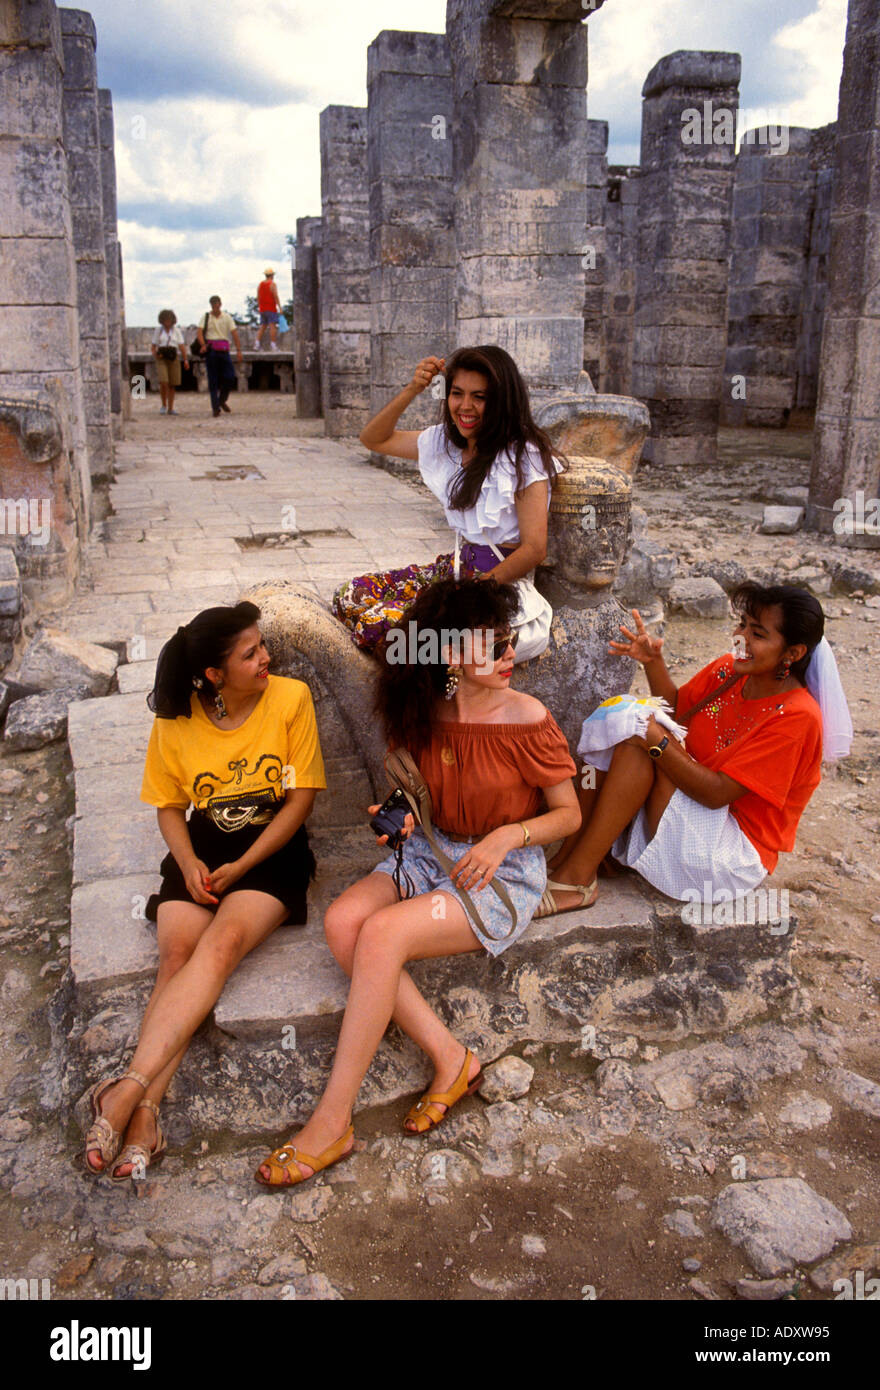 4, four, Mexican women, tourists, Temple of the Warriors, Chichen Itza Archaeological Site, Chichen Itza, Yucatan - Stock Image